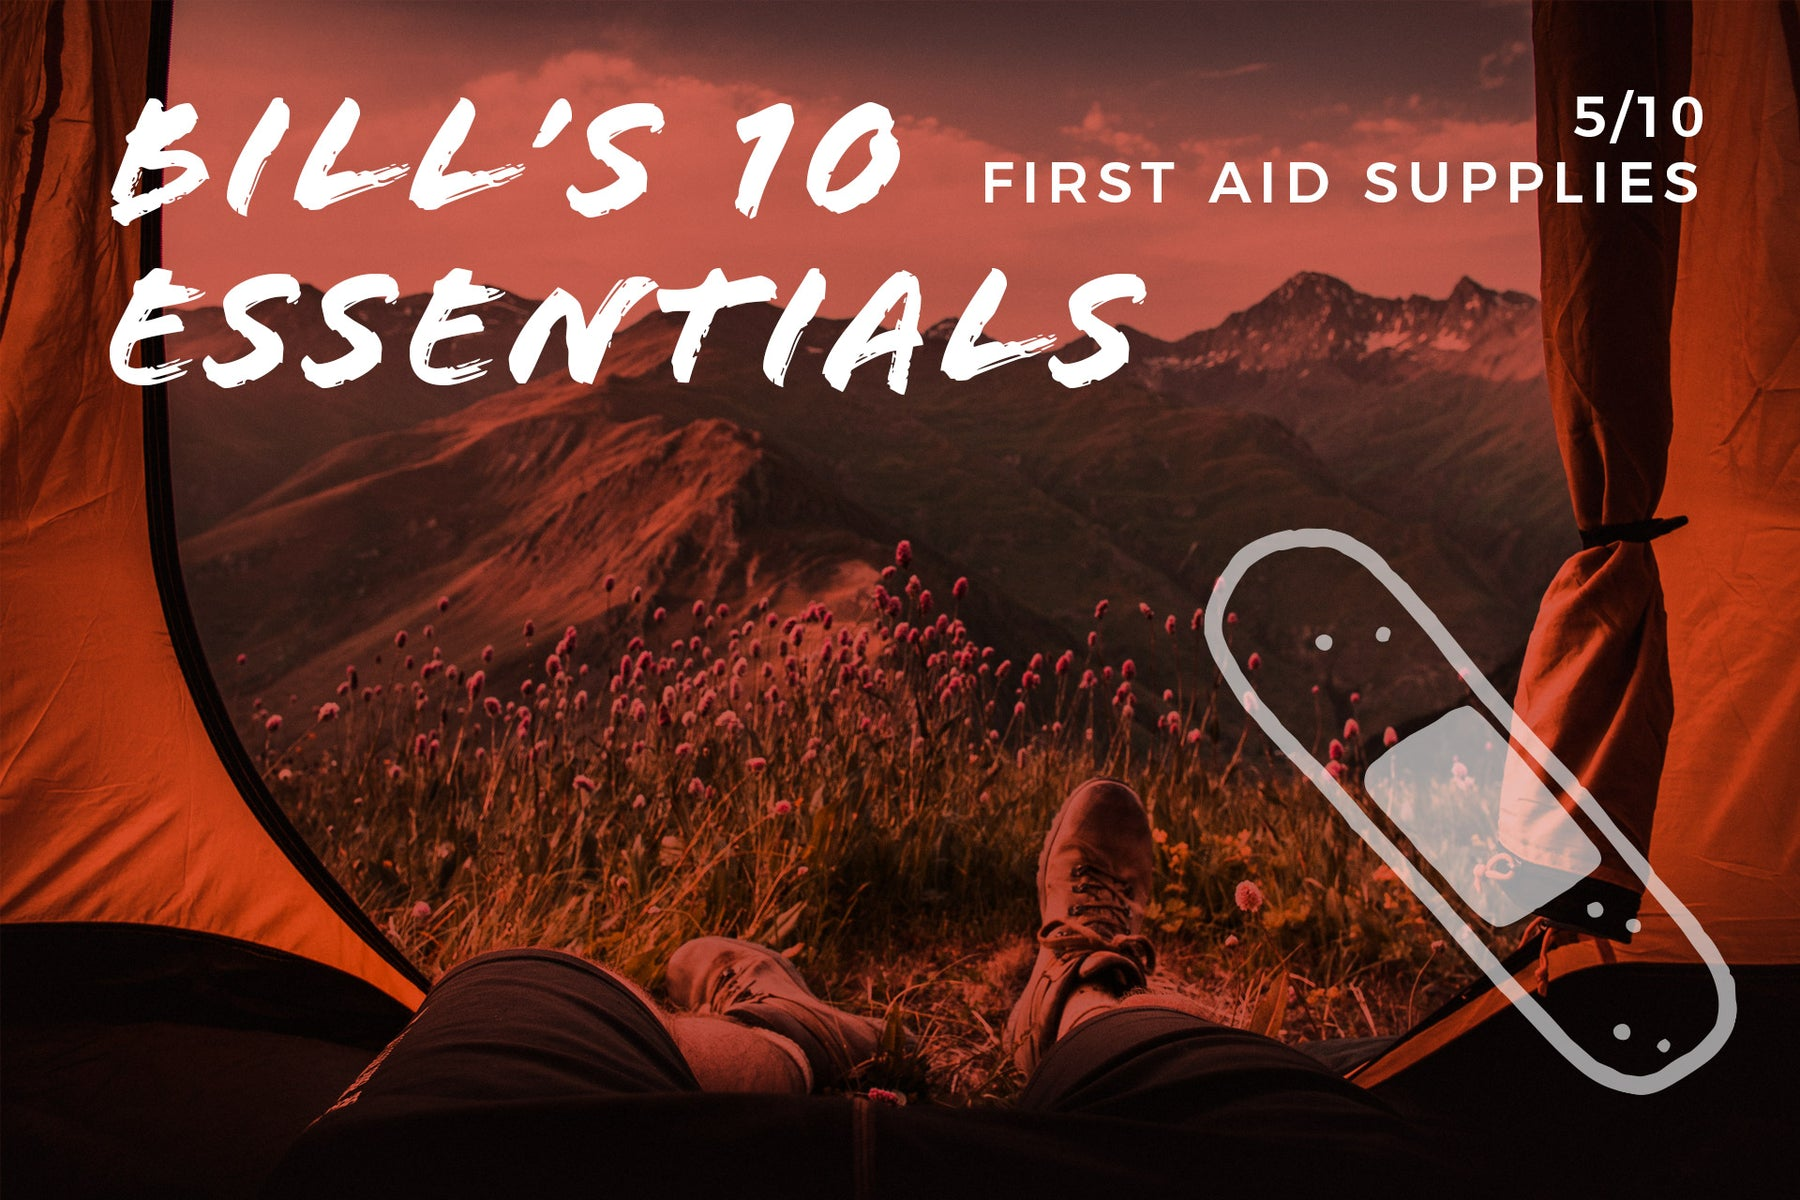 5/10 FIRST AID SUPPLIES